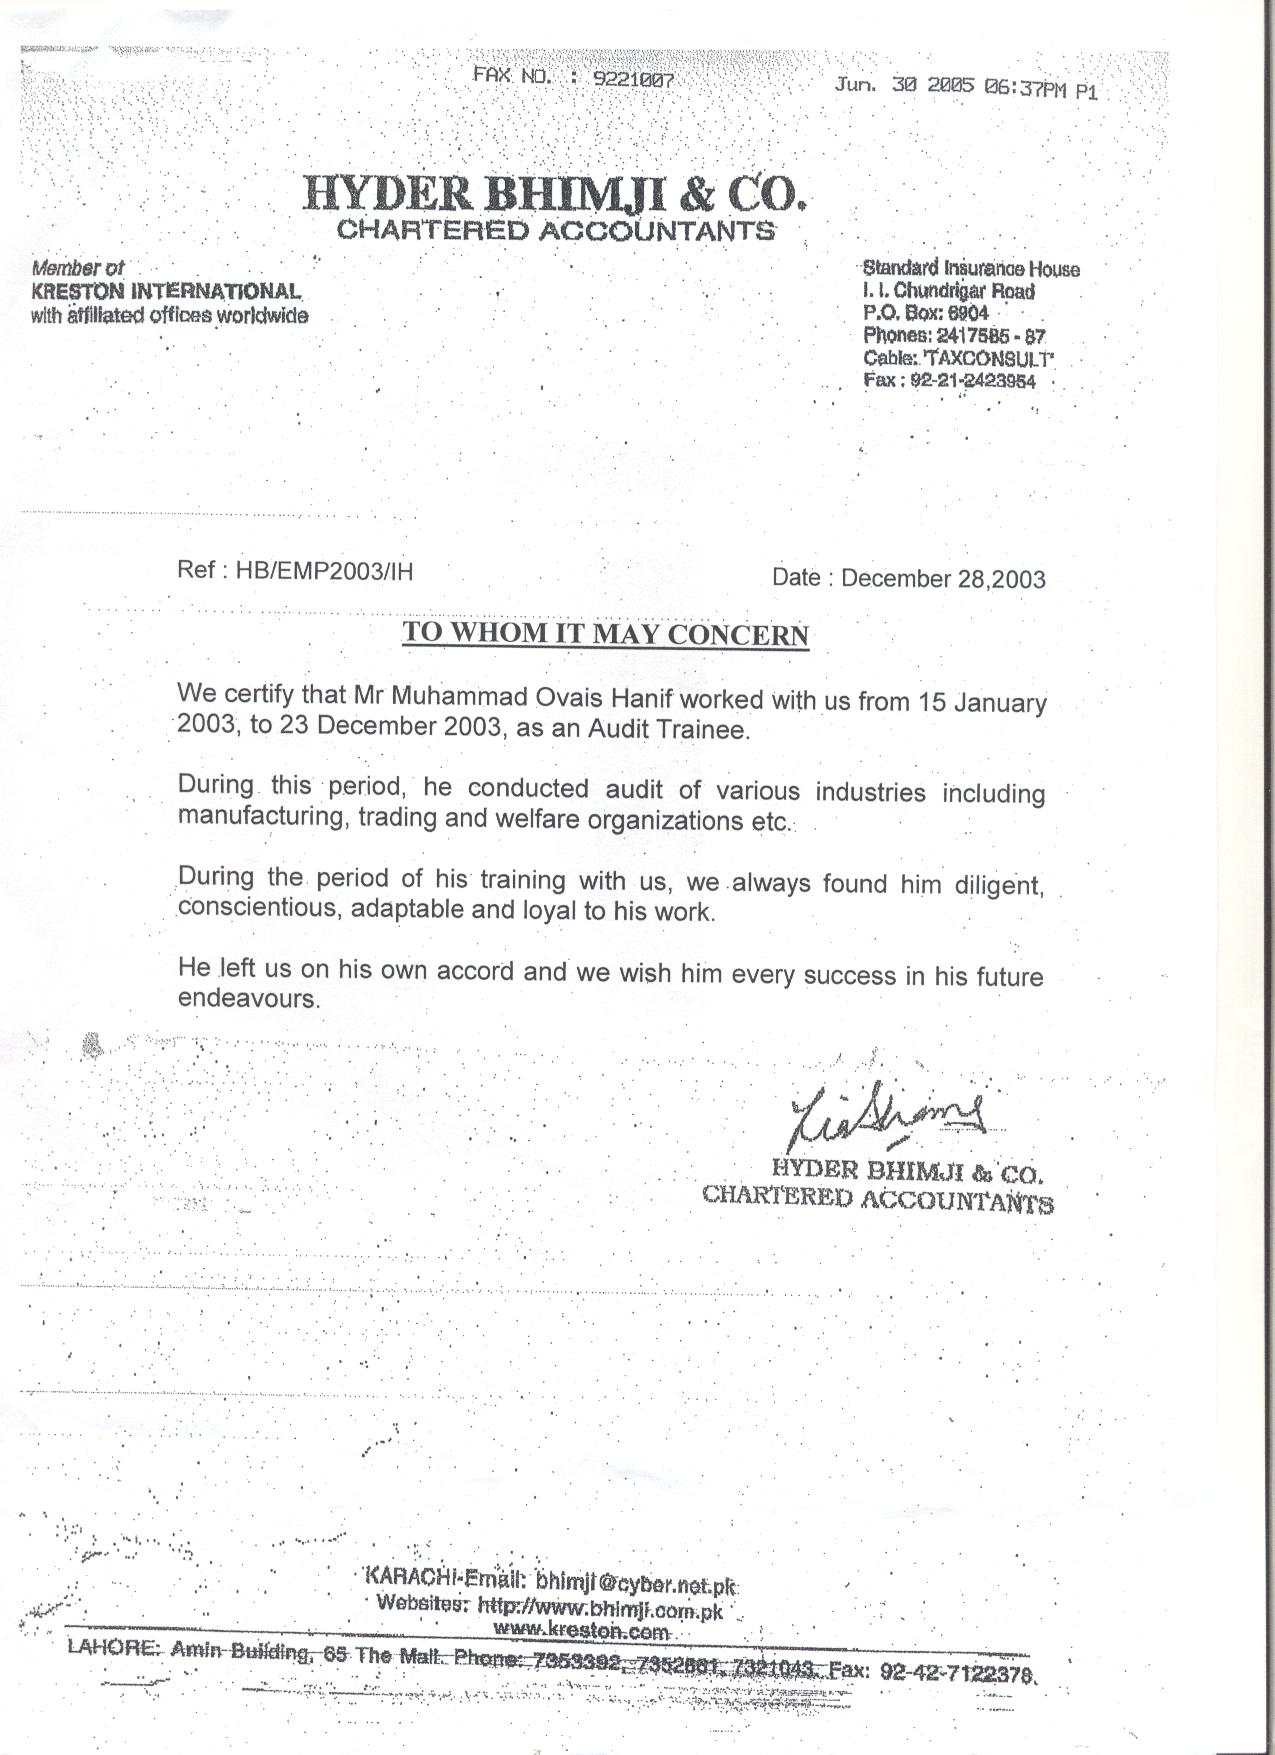 Format Of Noc Letter From Previous Auditor. I applied for the immigration under skilled worker class in 2010 and  received a refusal letter from CIC London dated 9th